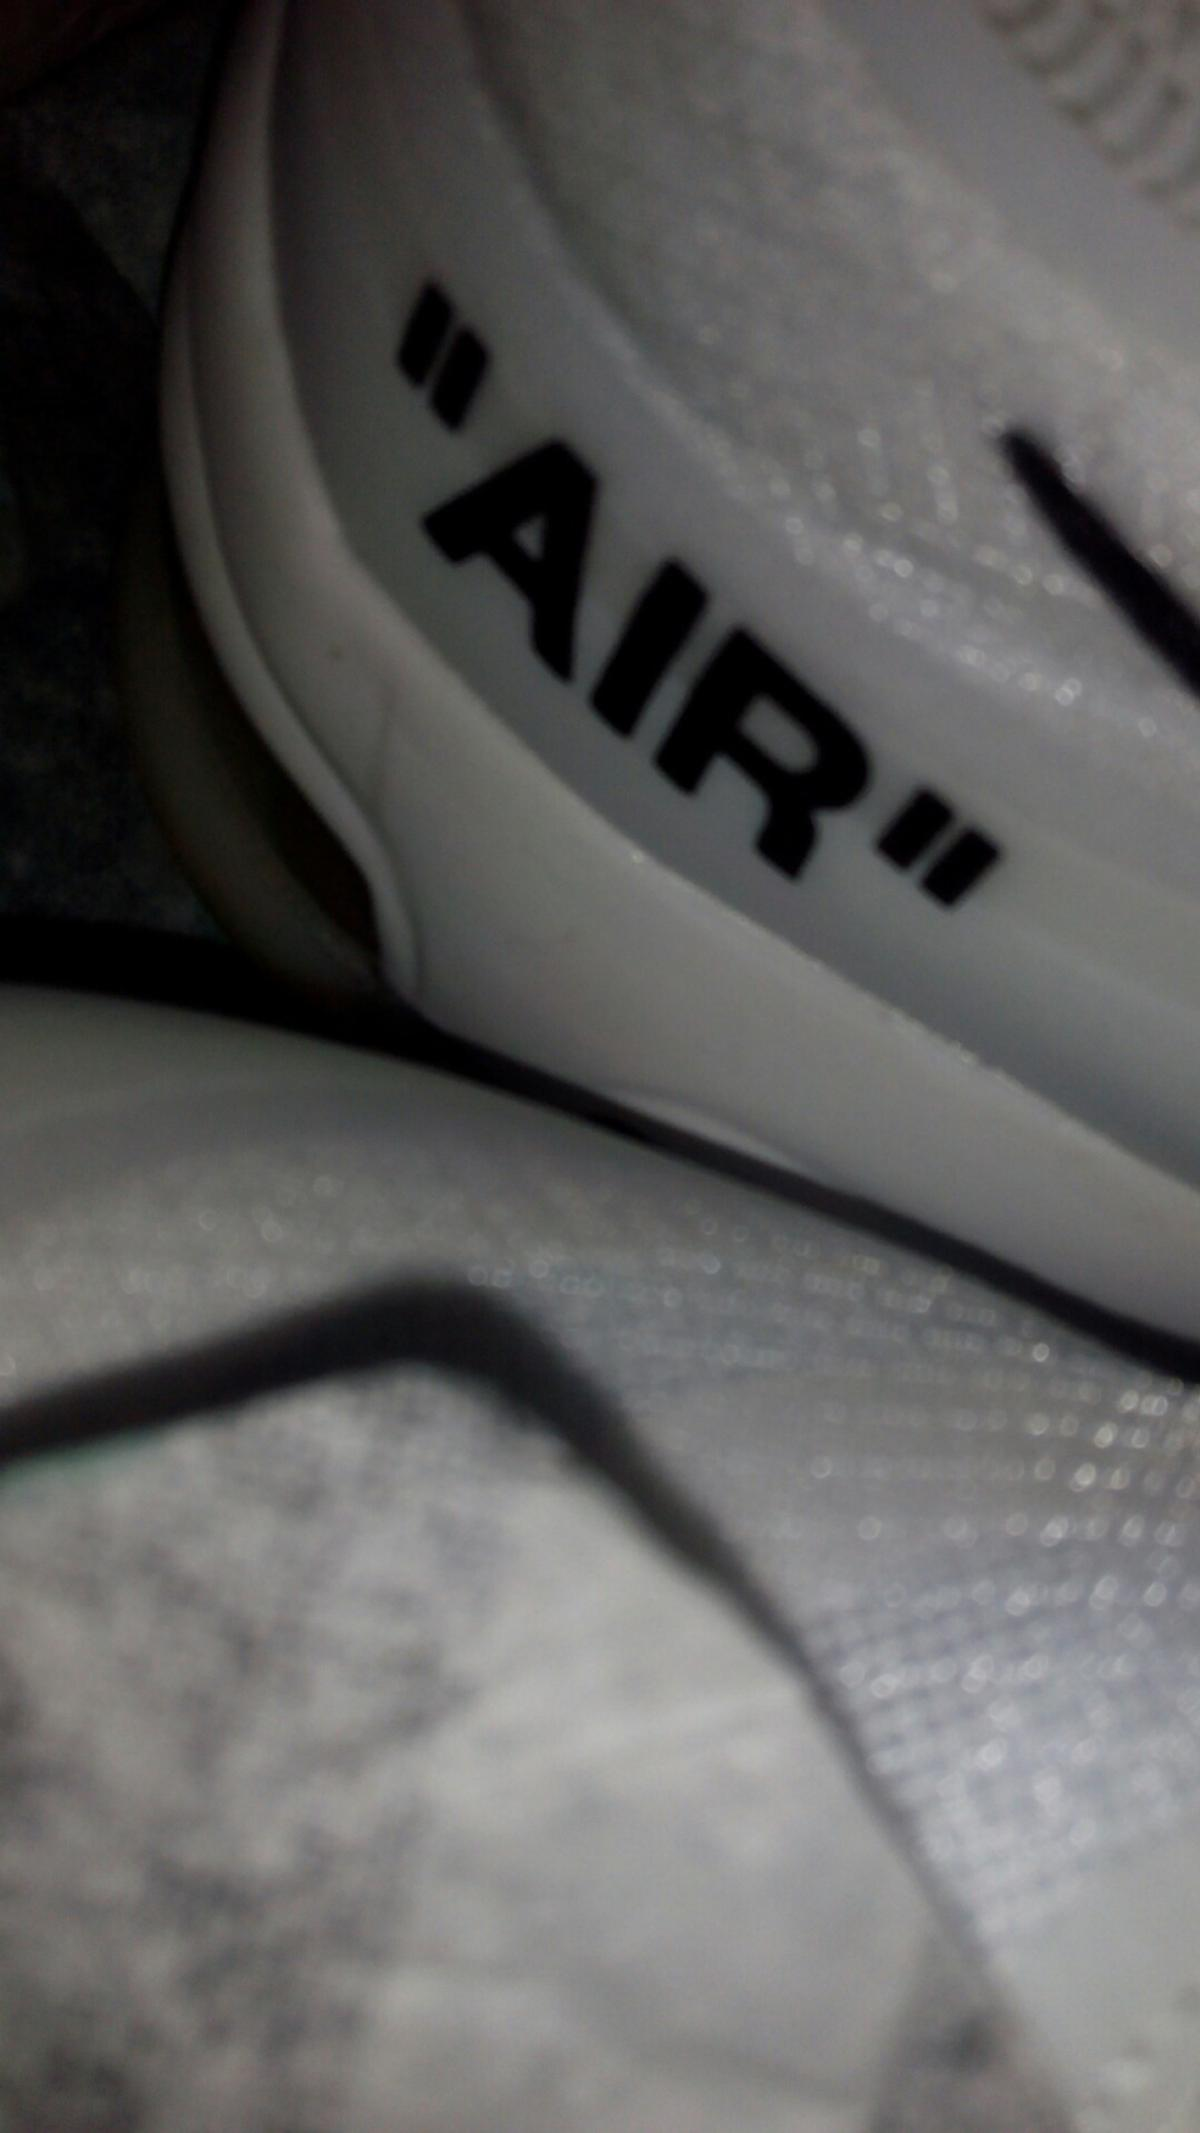 Off white x Nike Air max 97 in N8 London for £110.00 for